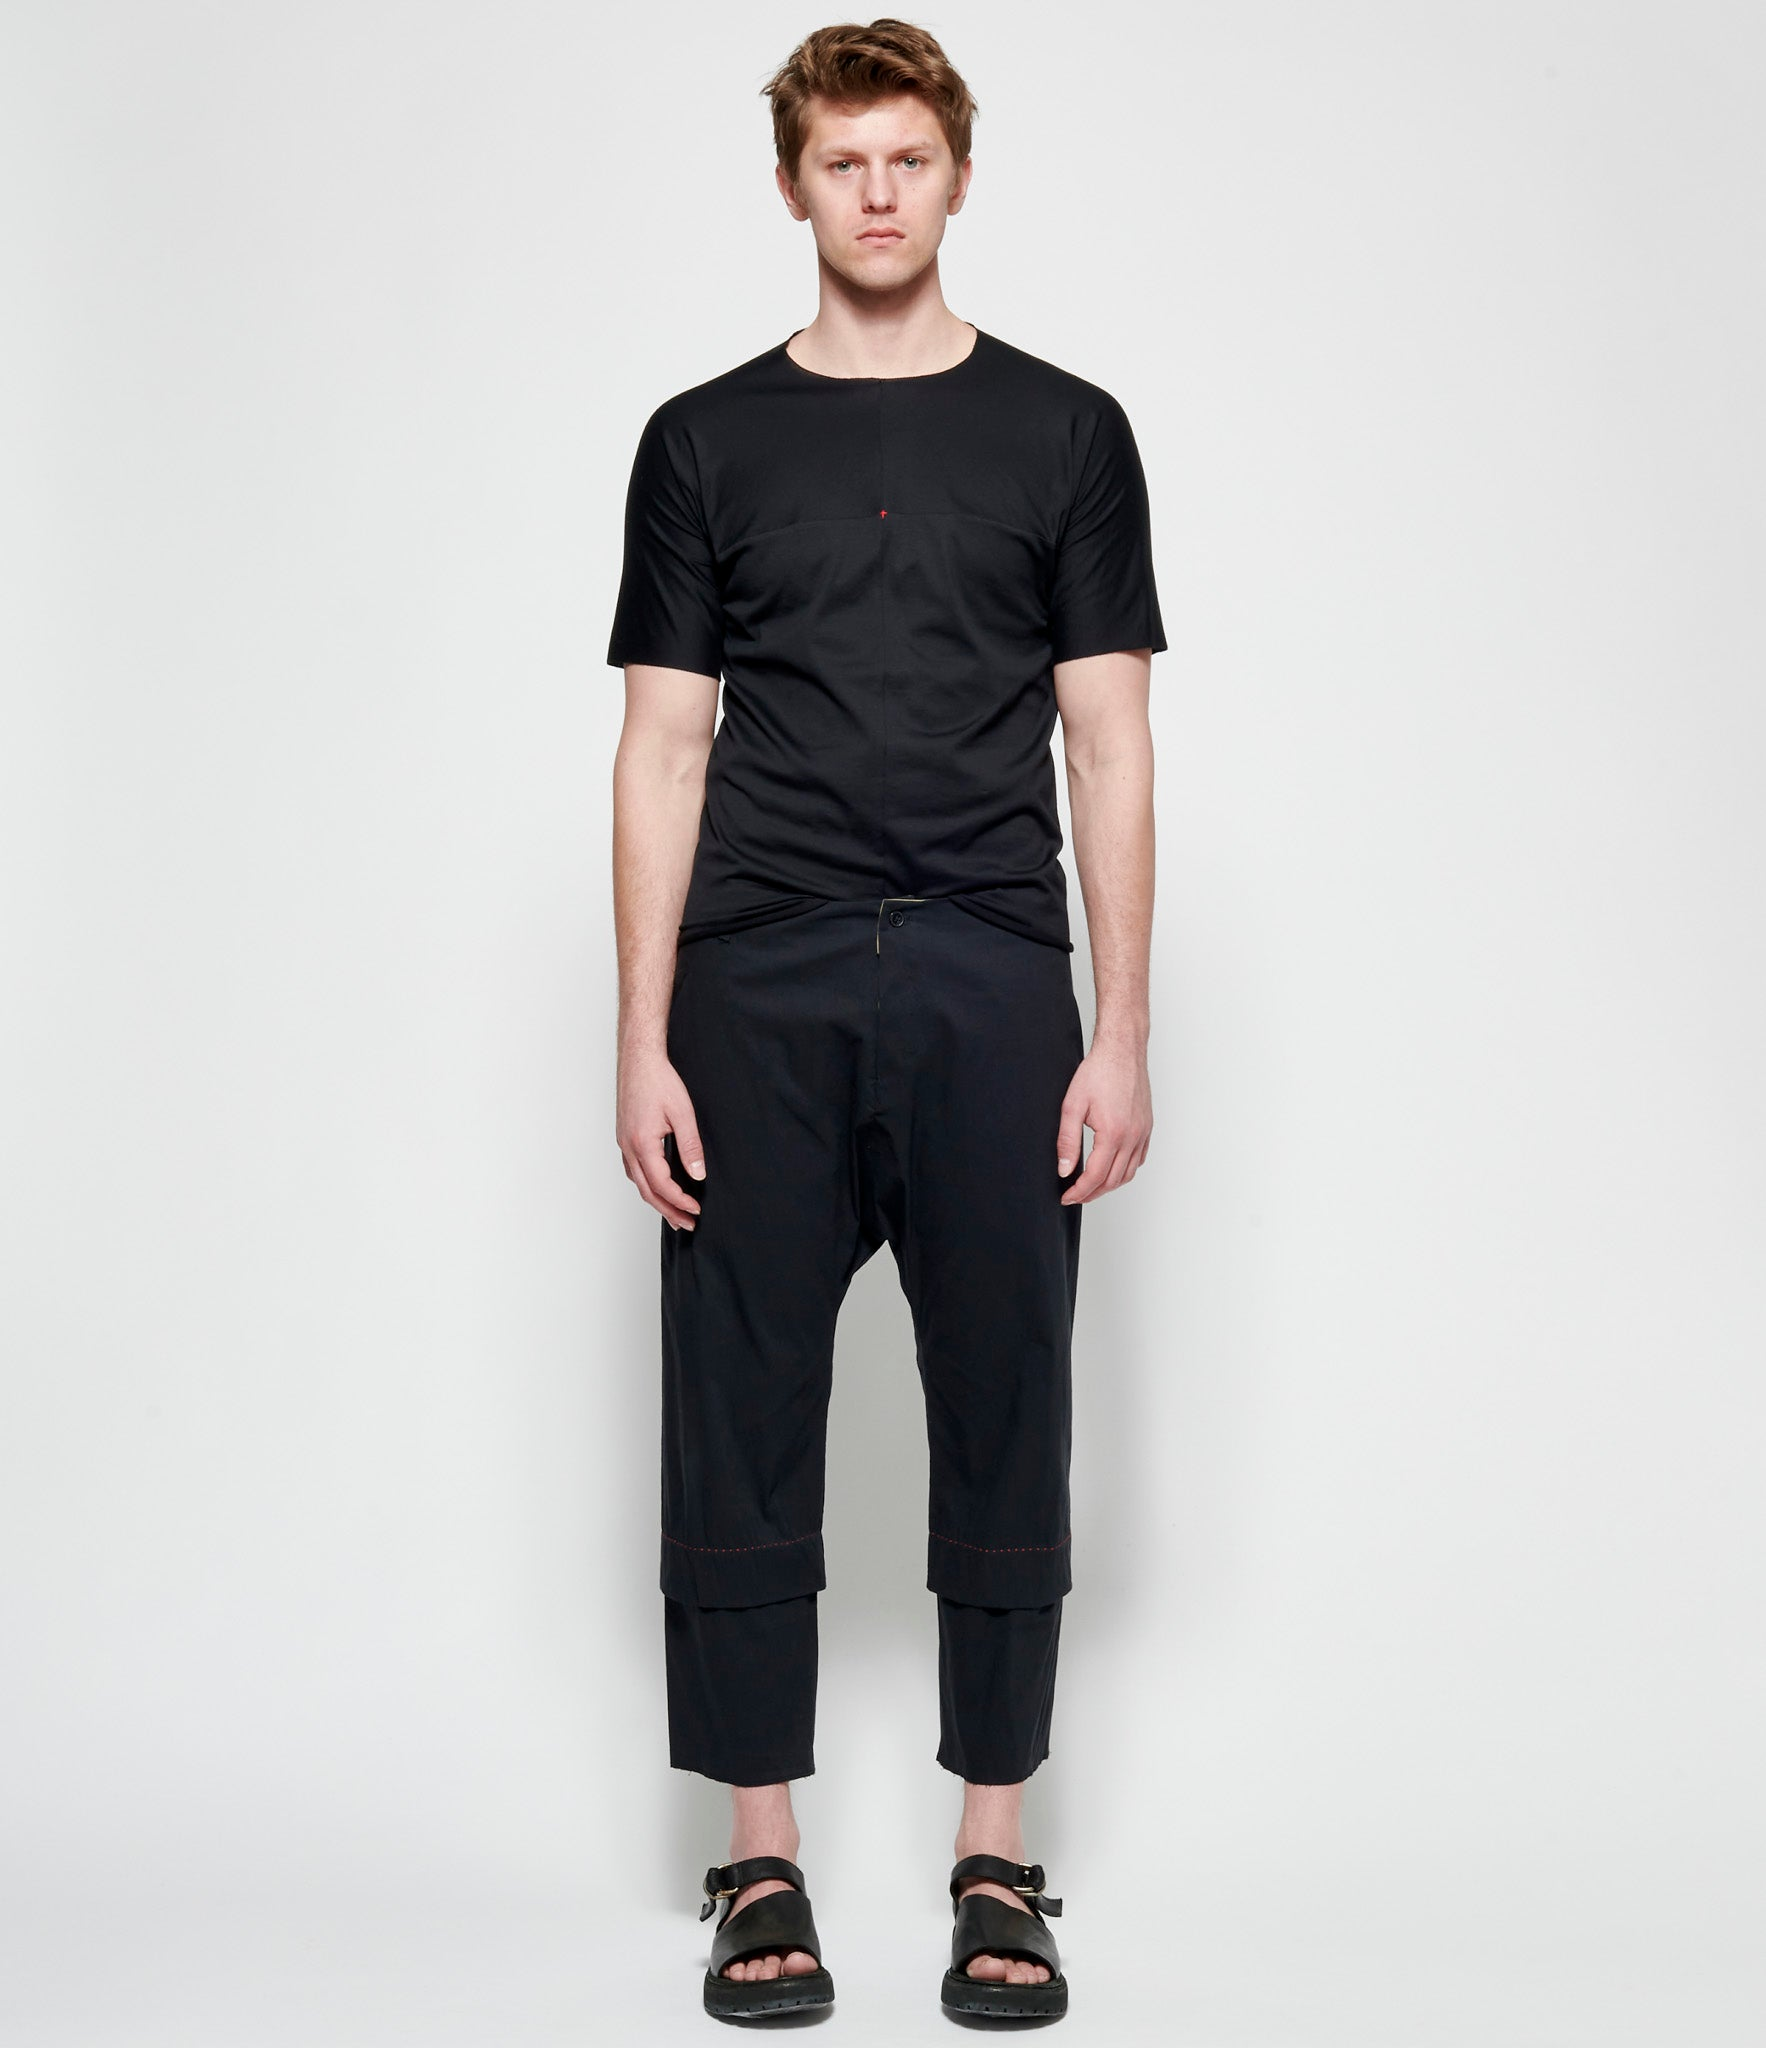 m.a+ Low Crotch 2 Pocket Pants